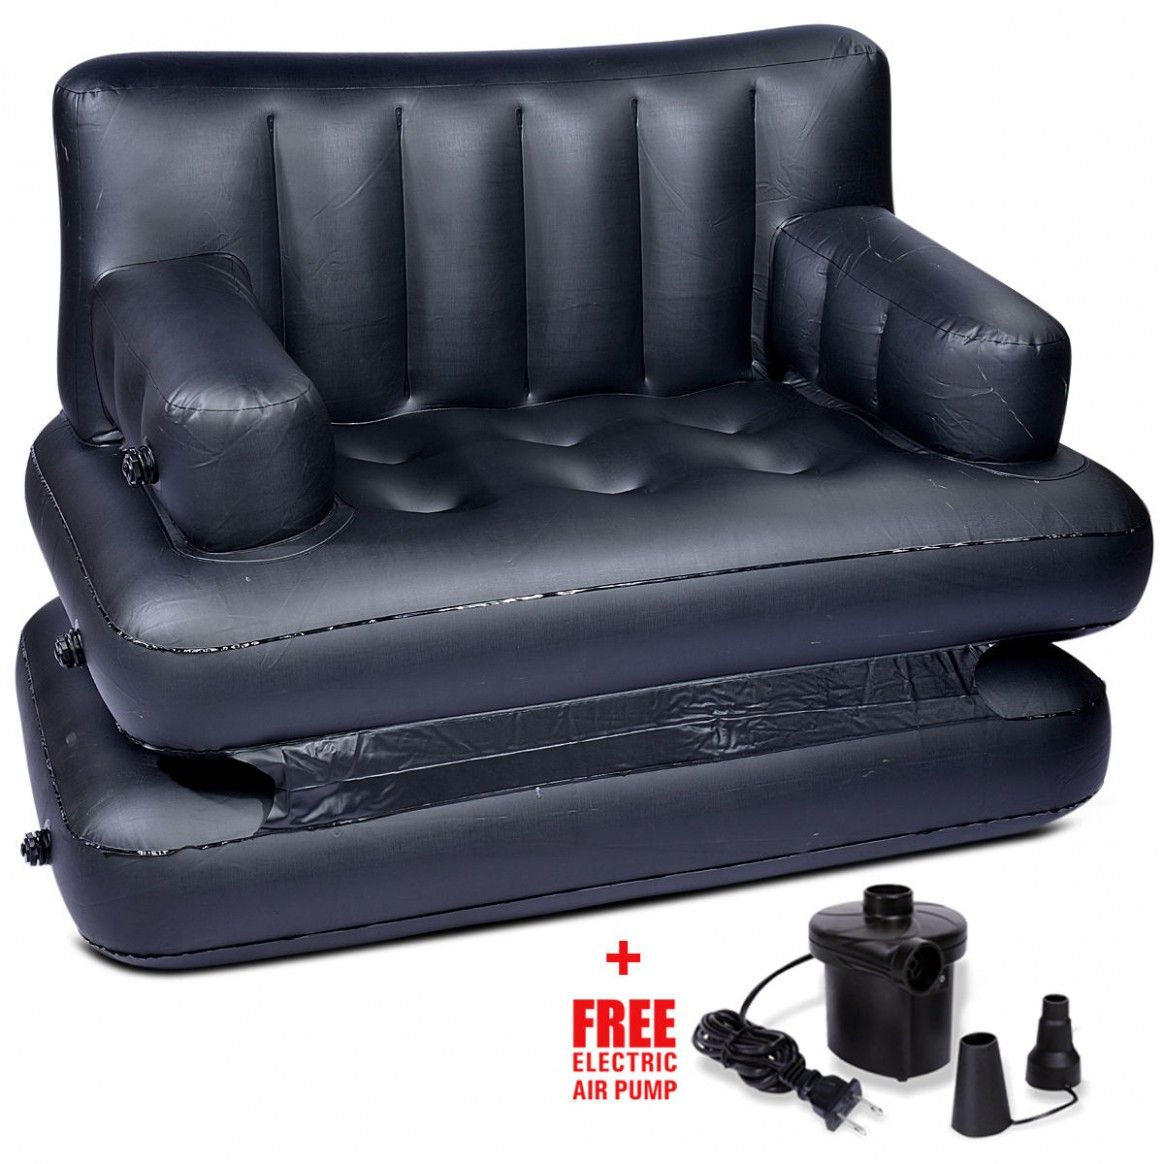 Awesome , 5in1sofabedpriceinnepal Sofa come bed, Sofa